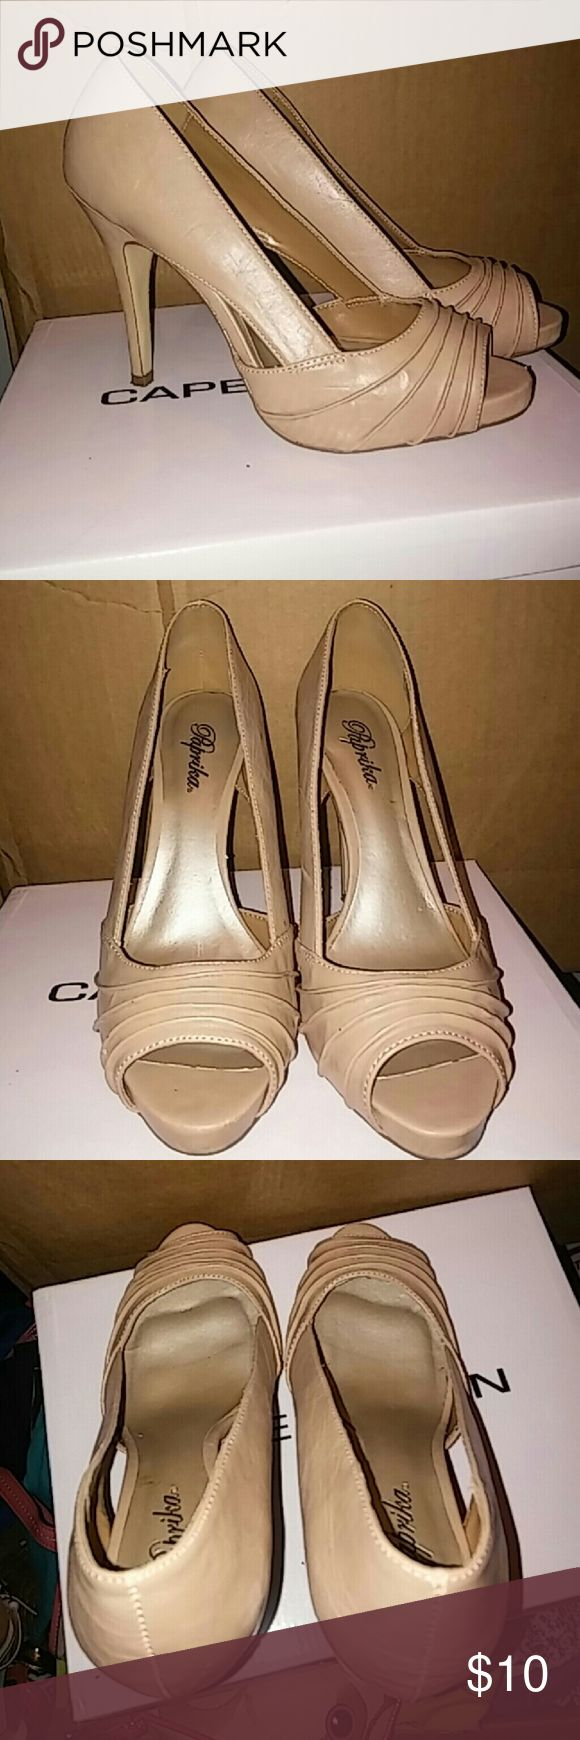 """Beige heels"""" NEW ITEM """" Brand new has cushions for comfort. These are not cheap heels. Shoes Heels"""